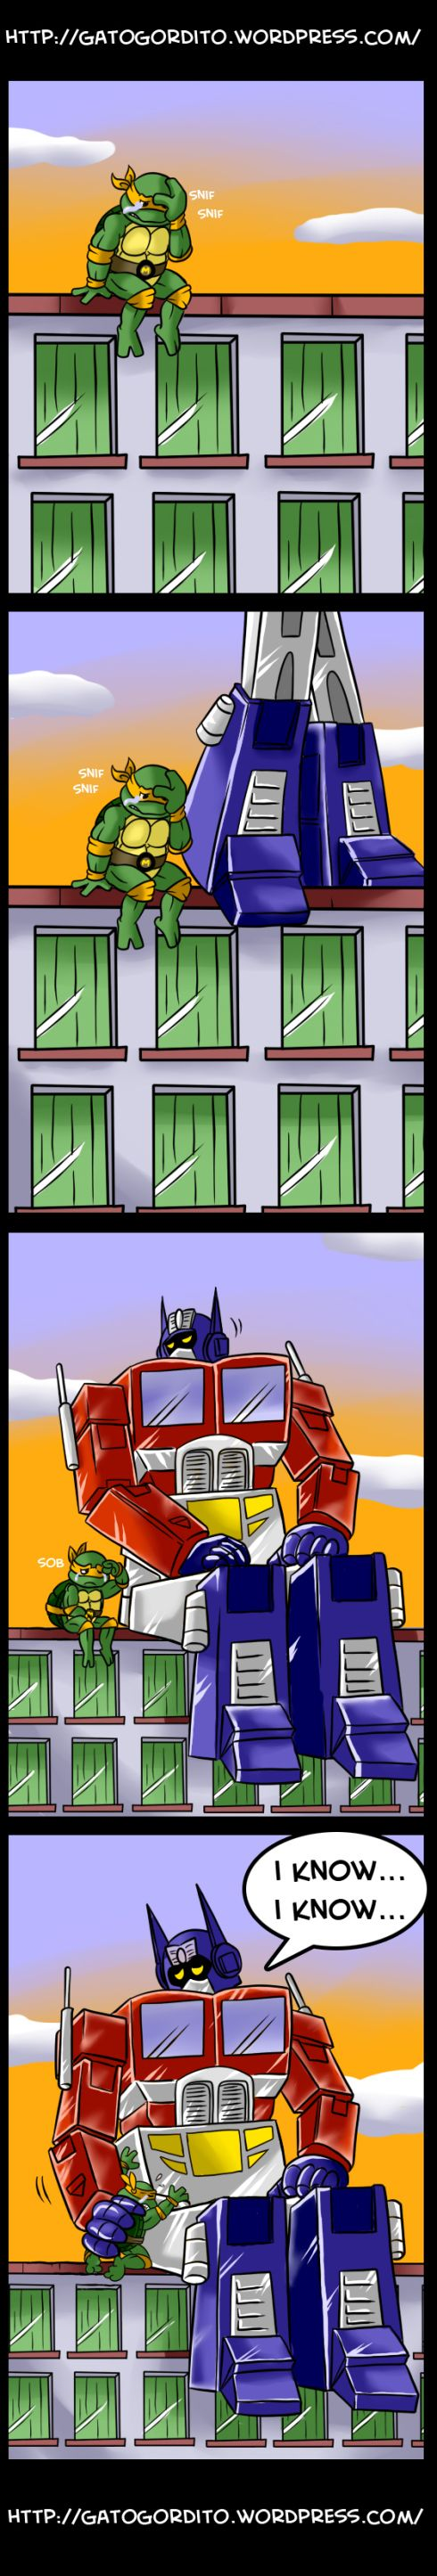 Optimus feels Mikey's pain - Freakin Michael Bay!  D=<  You made my favorite turtle cry!